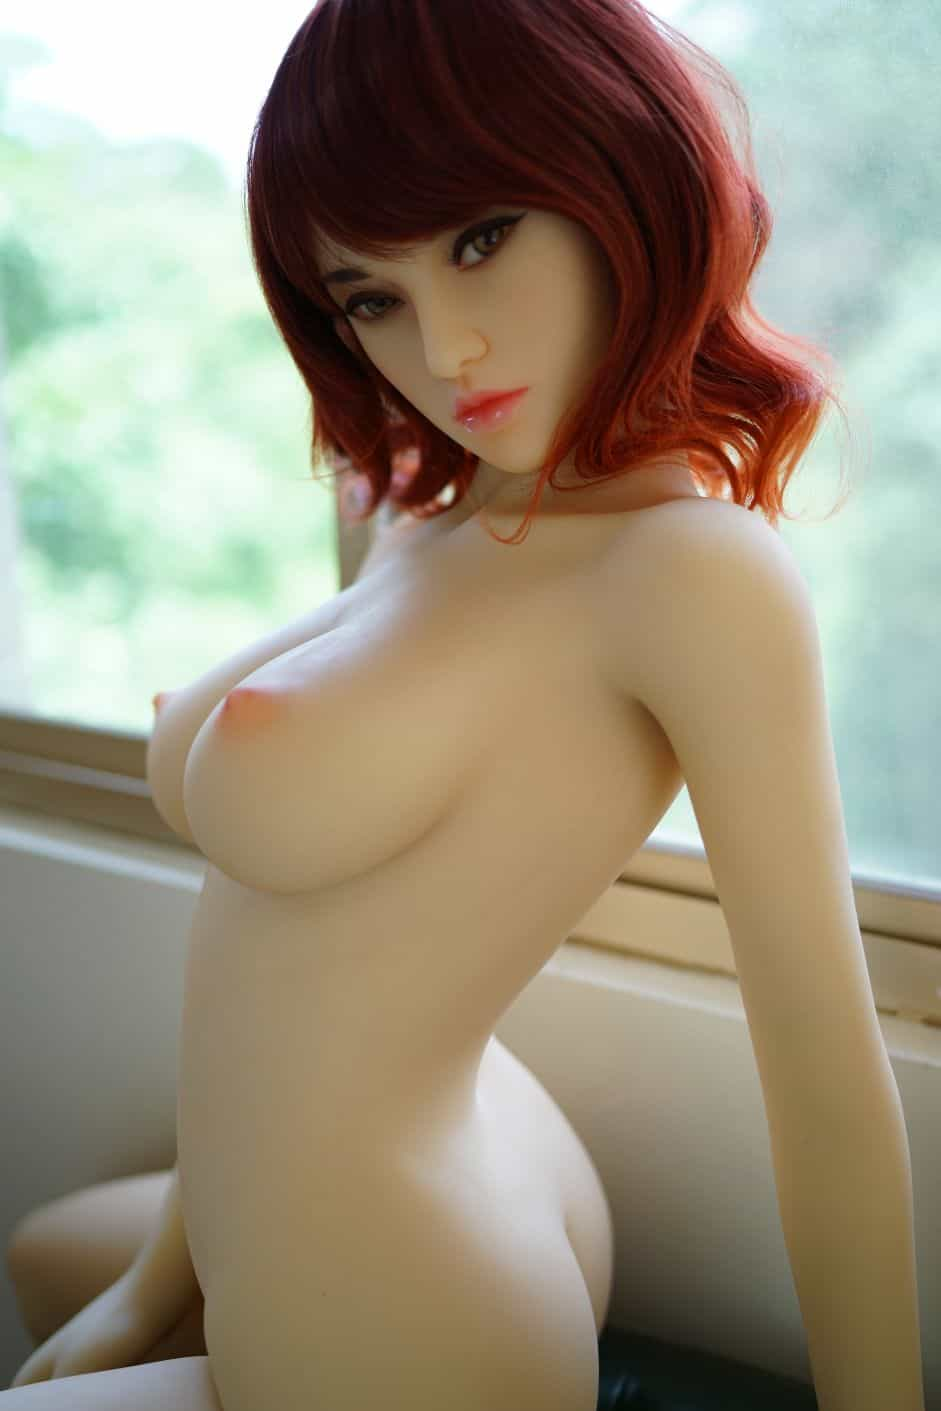 Celia-Sex-Doll-From-Dirty-Knights-Sex-Dolls-1 (8)